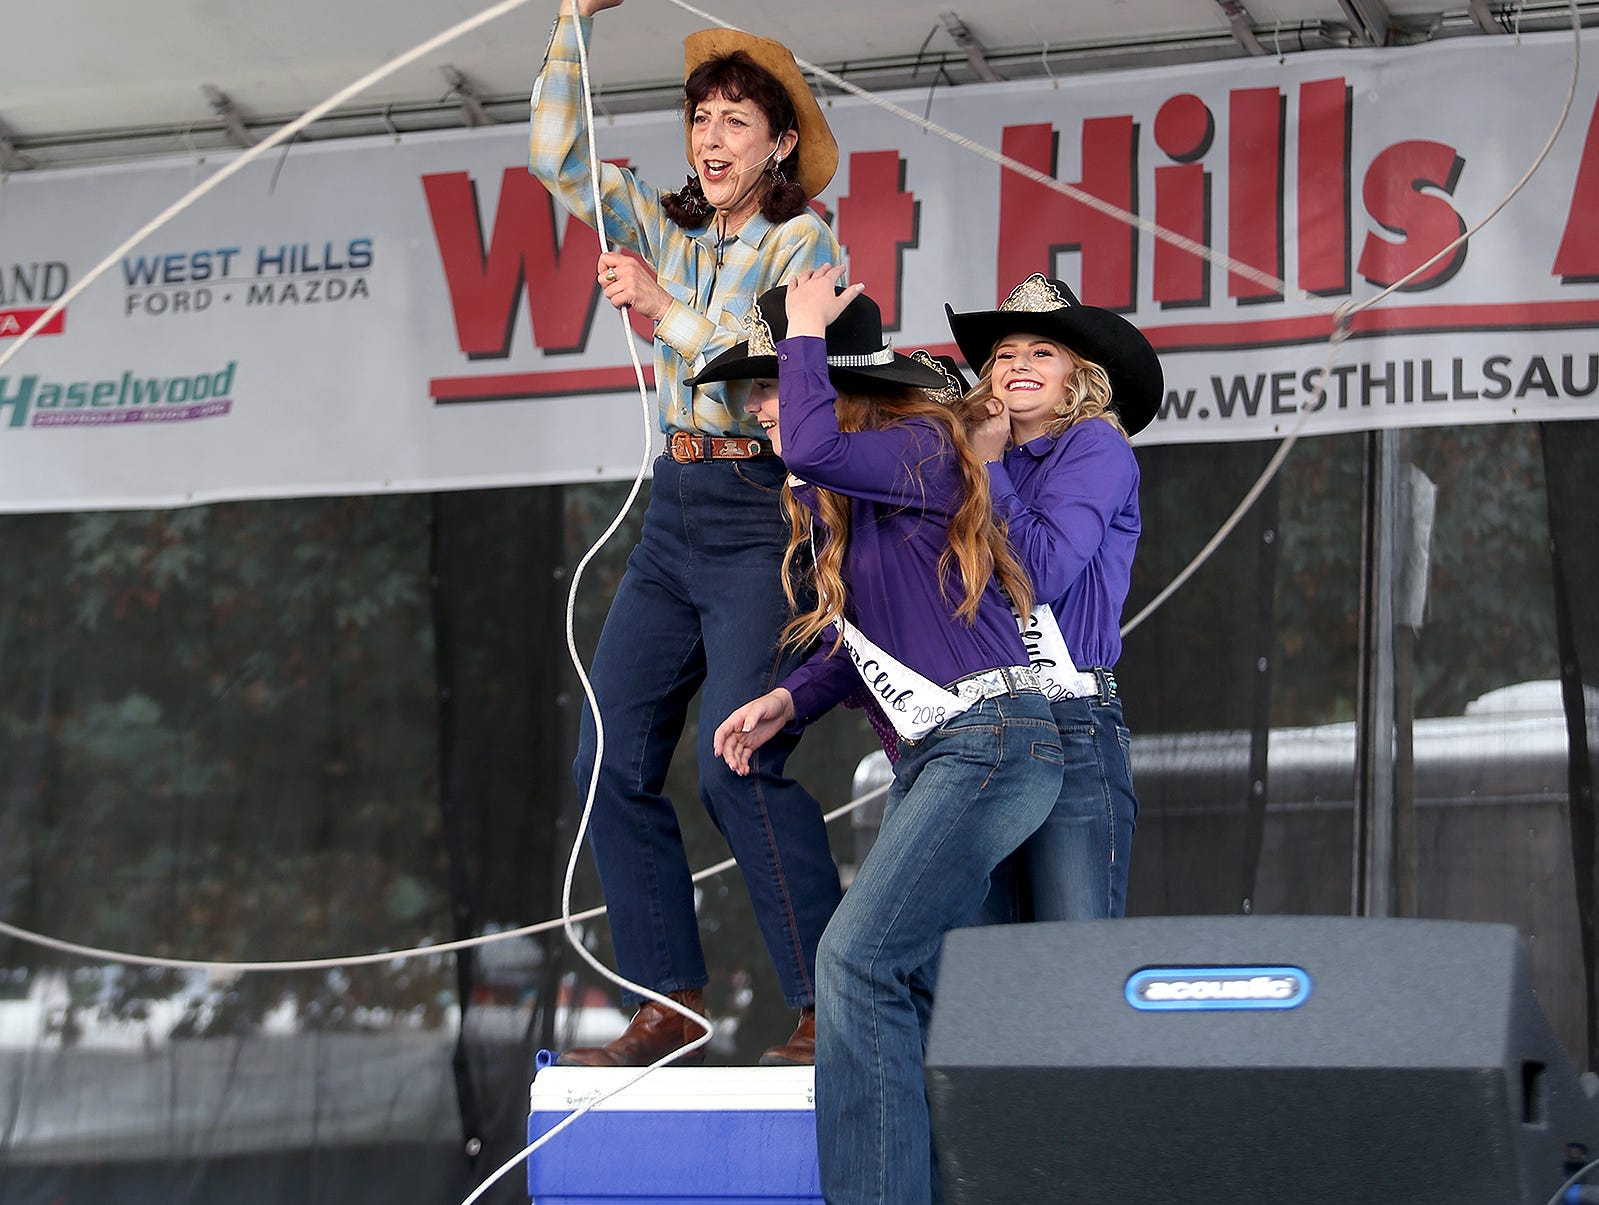 Karen Quest ropes cowgirl royalty in her cowgirl tricks show at the Kitsap County Fair & Stampede on Friday, August 24, 2018 at the Kitsap County Fairgrounds.